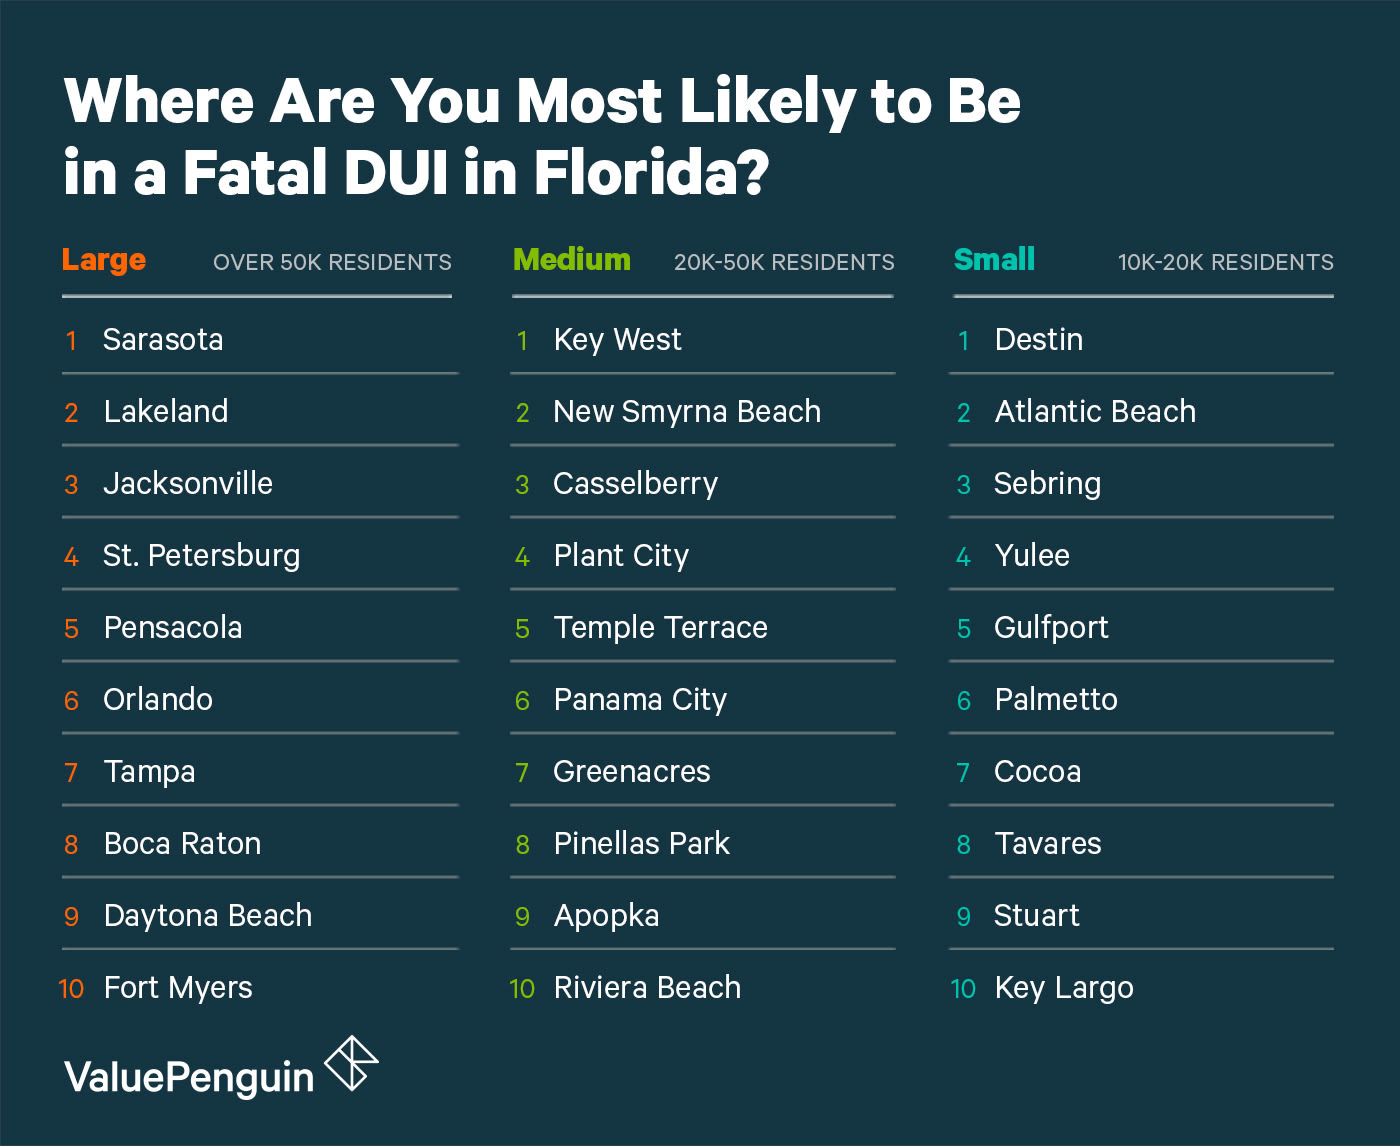 Chart showing the 10 most dangerous cities for DUIs in Florida for each of three groups: small, medium and large.